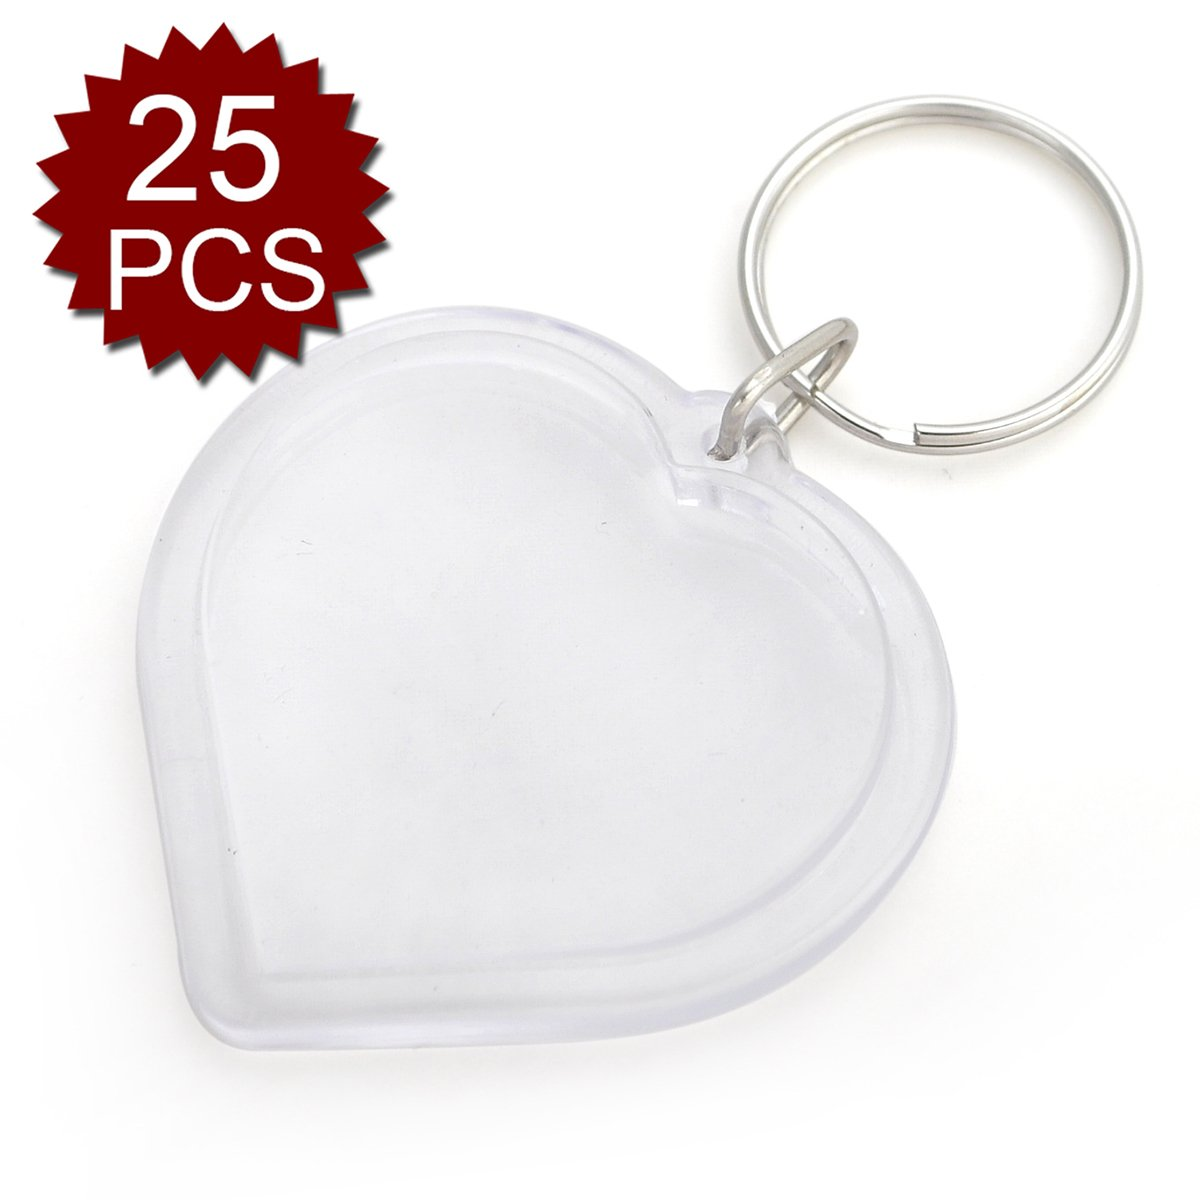 GOGO 25 PCS Acrylic Photo Keychains, 2 Inch Heart Shape, Great for DIY Gift